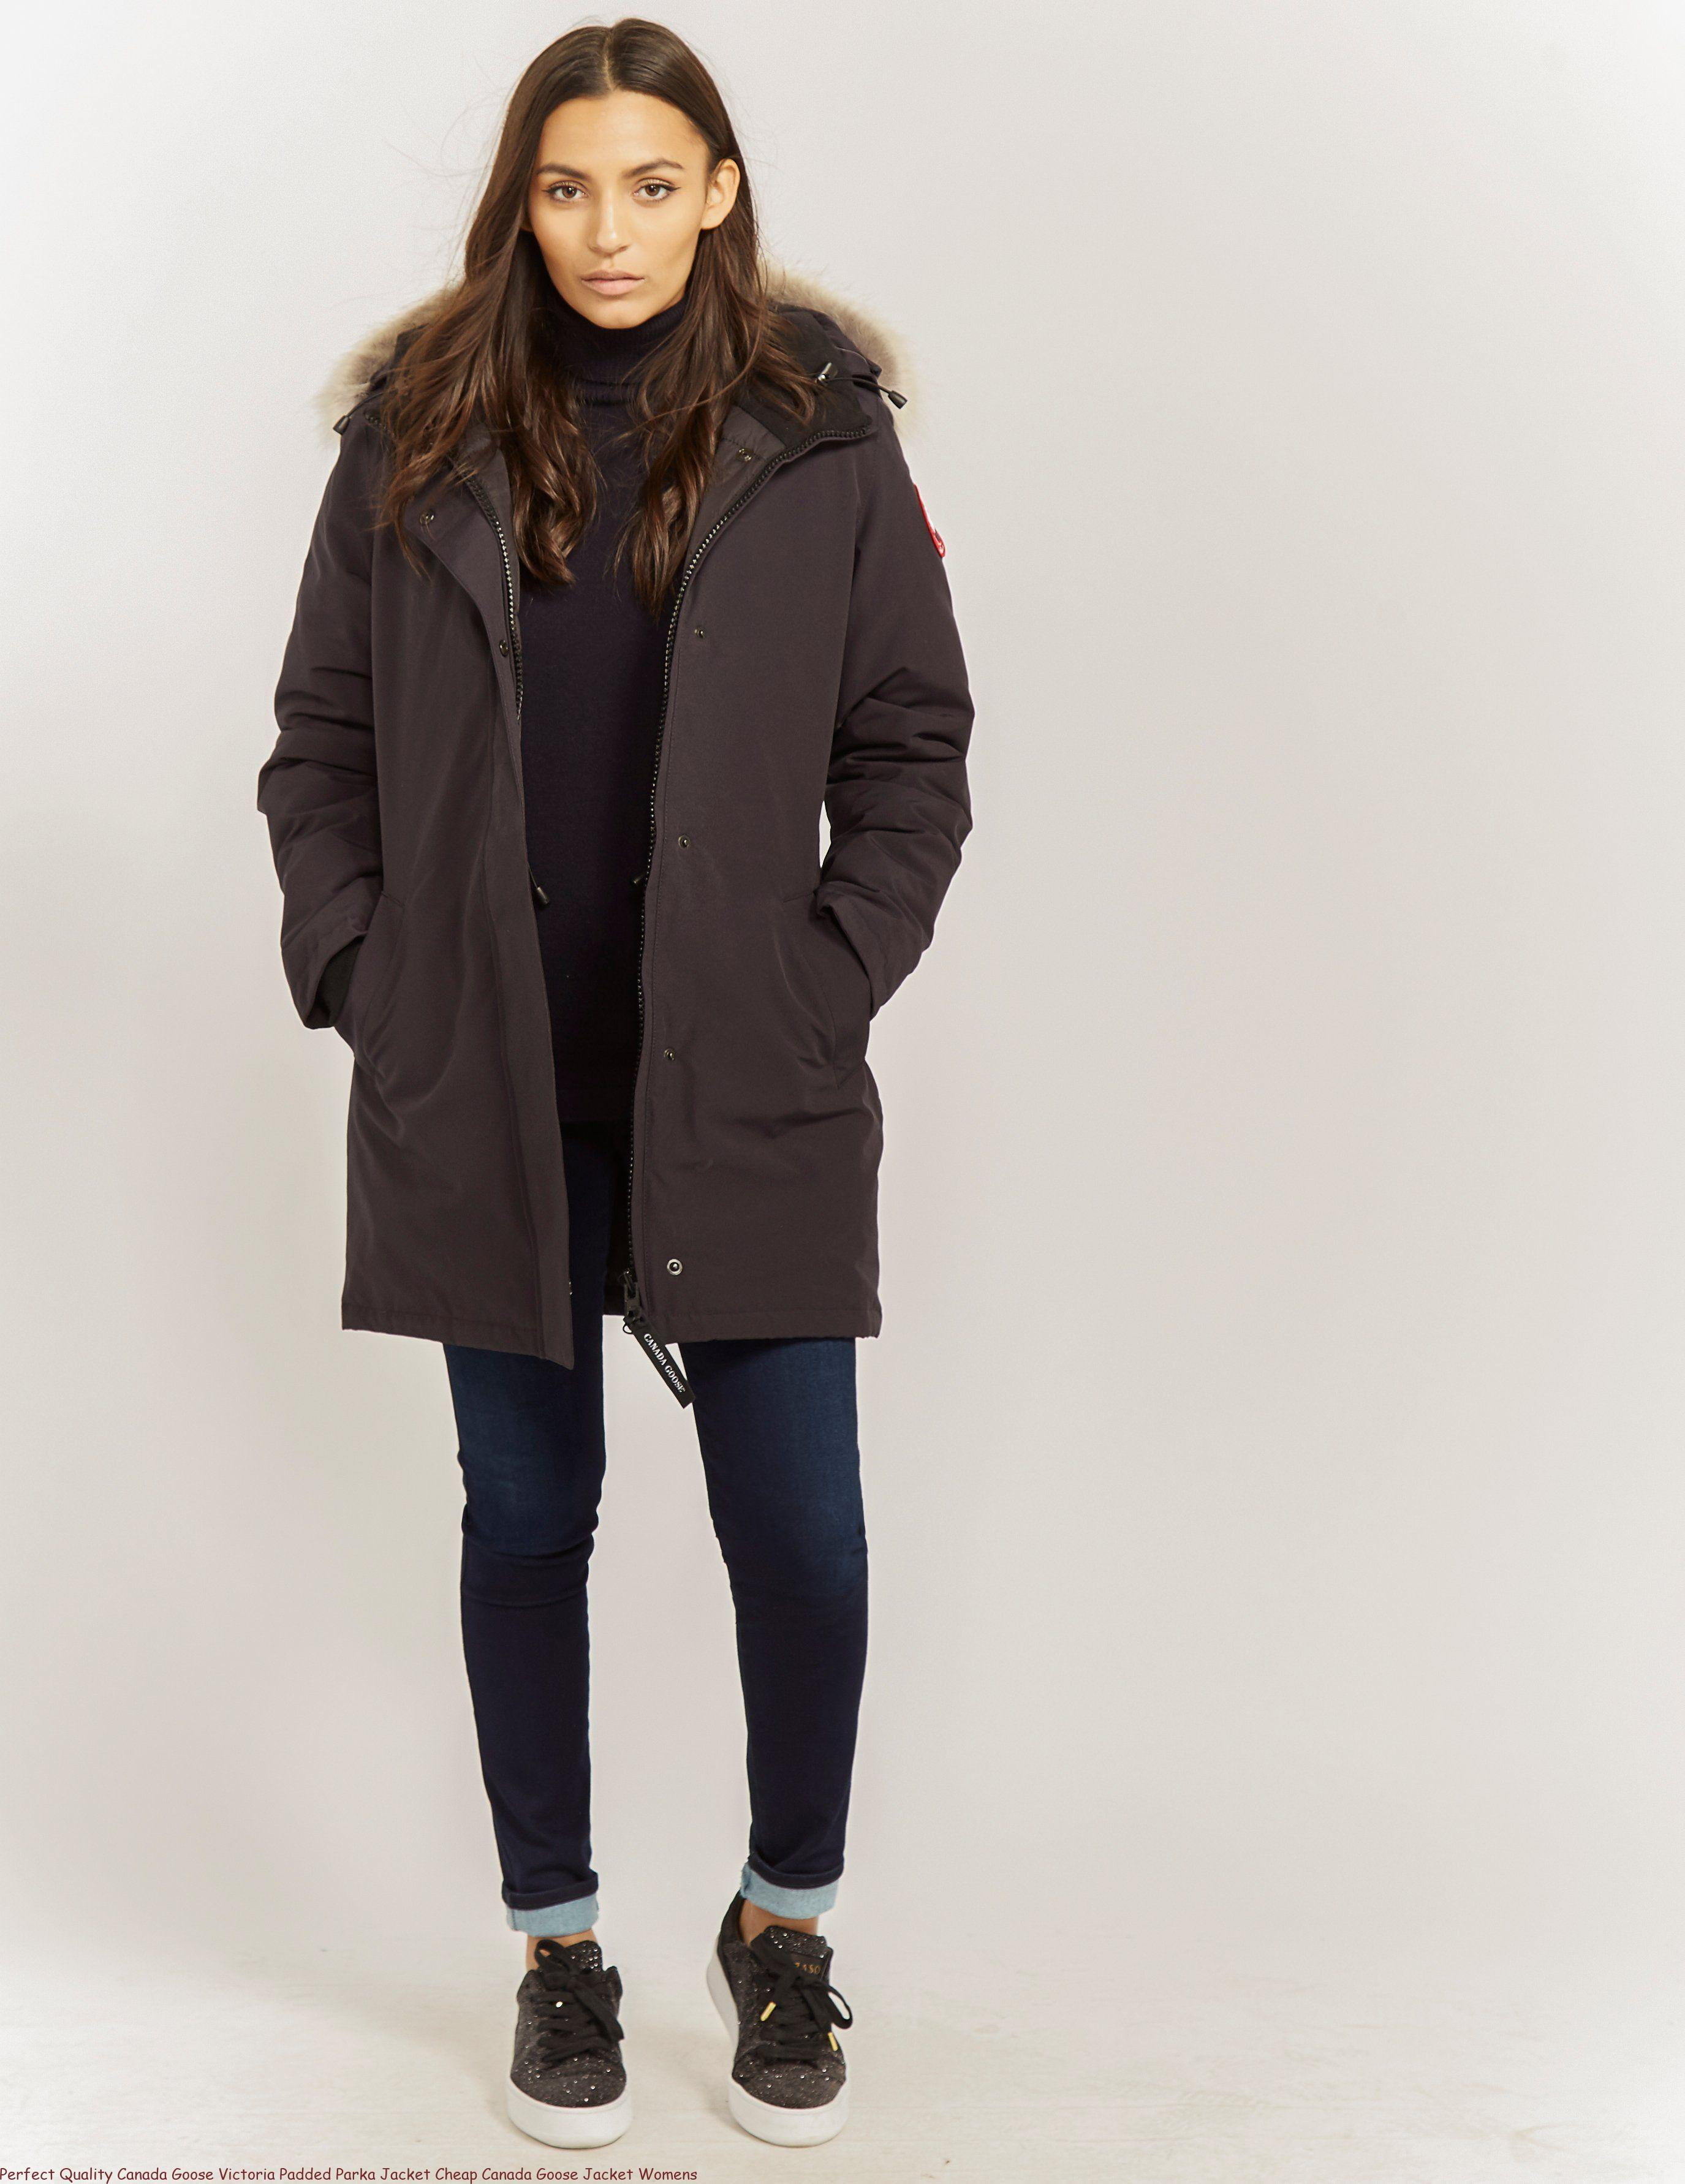 Perfect Quality Canada Goose Victoria Padded Parka Jacket Cheap Canada  Goose Jacket Womens – Canada Goose Outlet Toronto Factory Jacket Sale 067a22f6b6